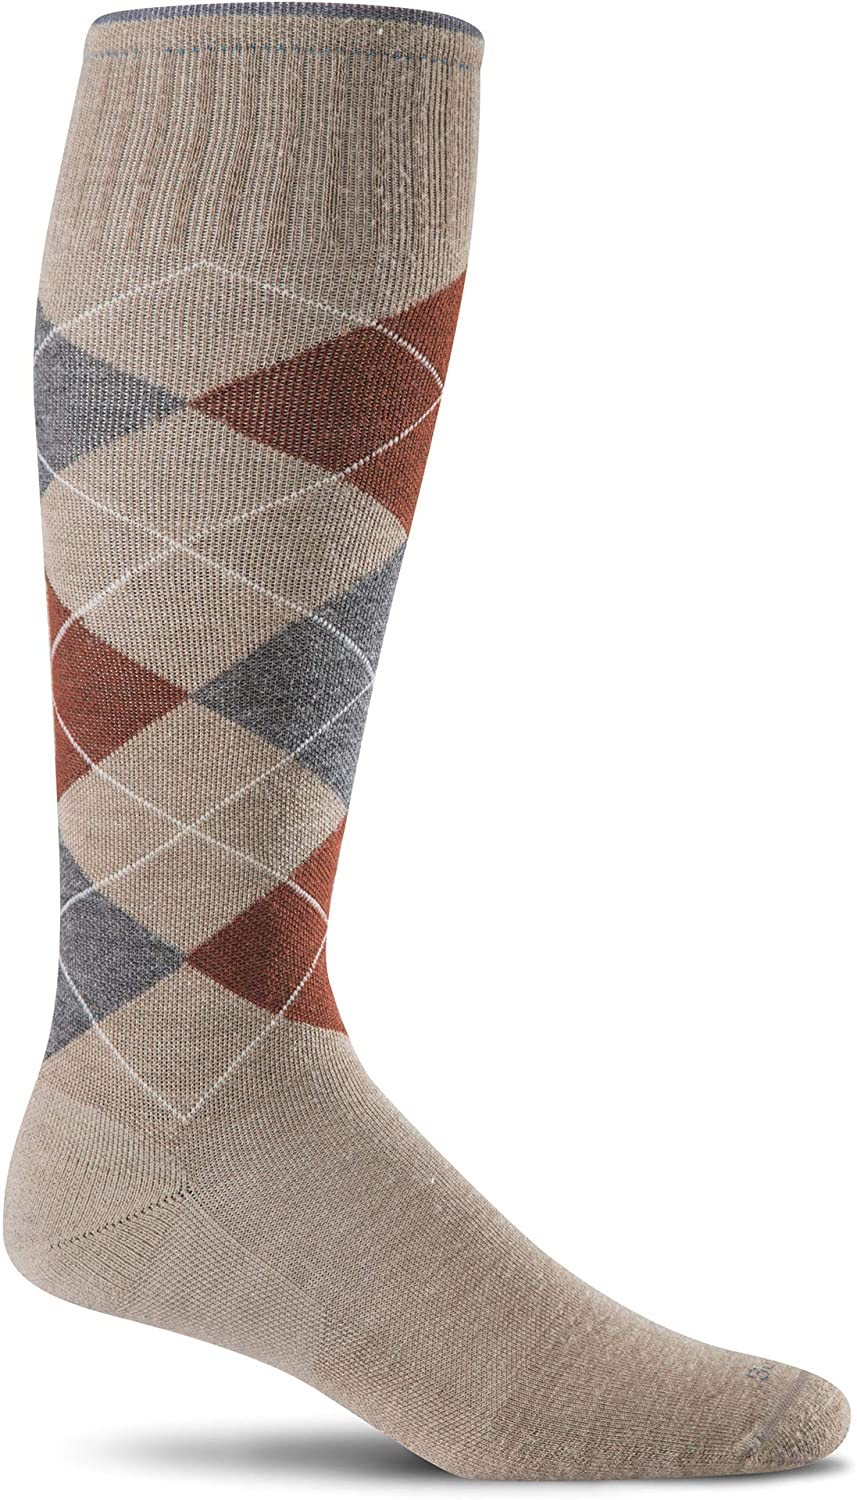 Sockwell Men's Argyle Circulator Moderate Graduated Compression Sock in Khaki from the side